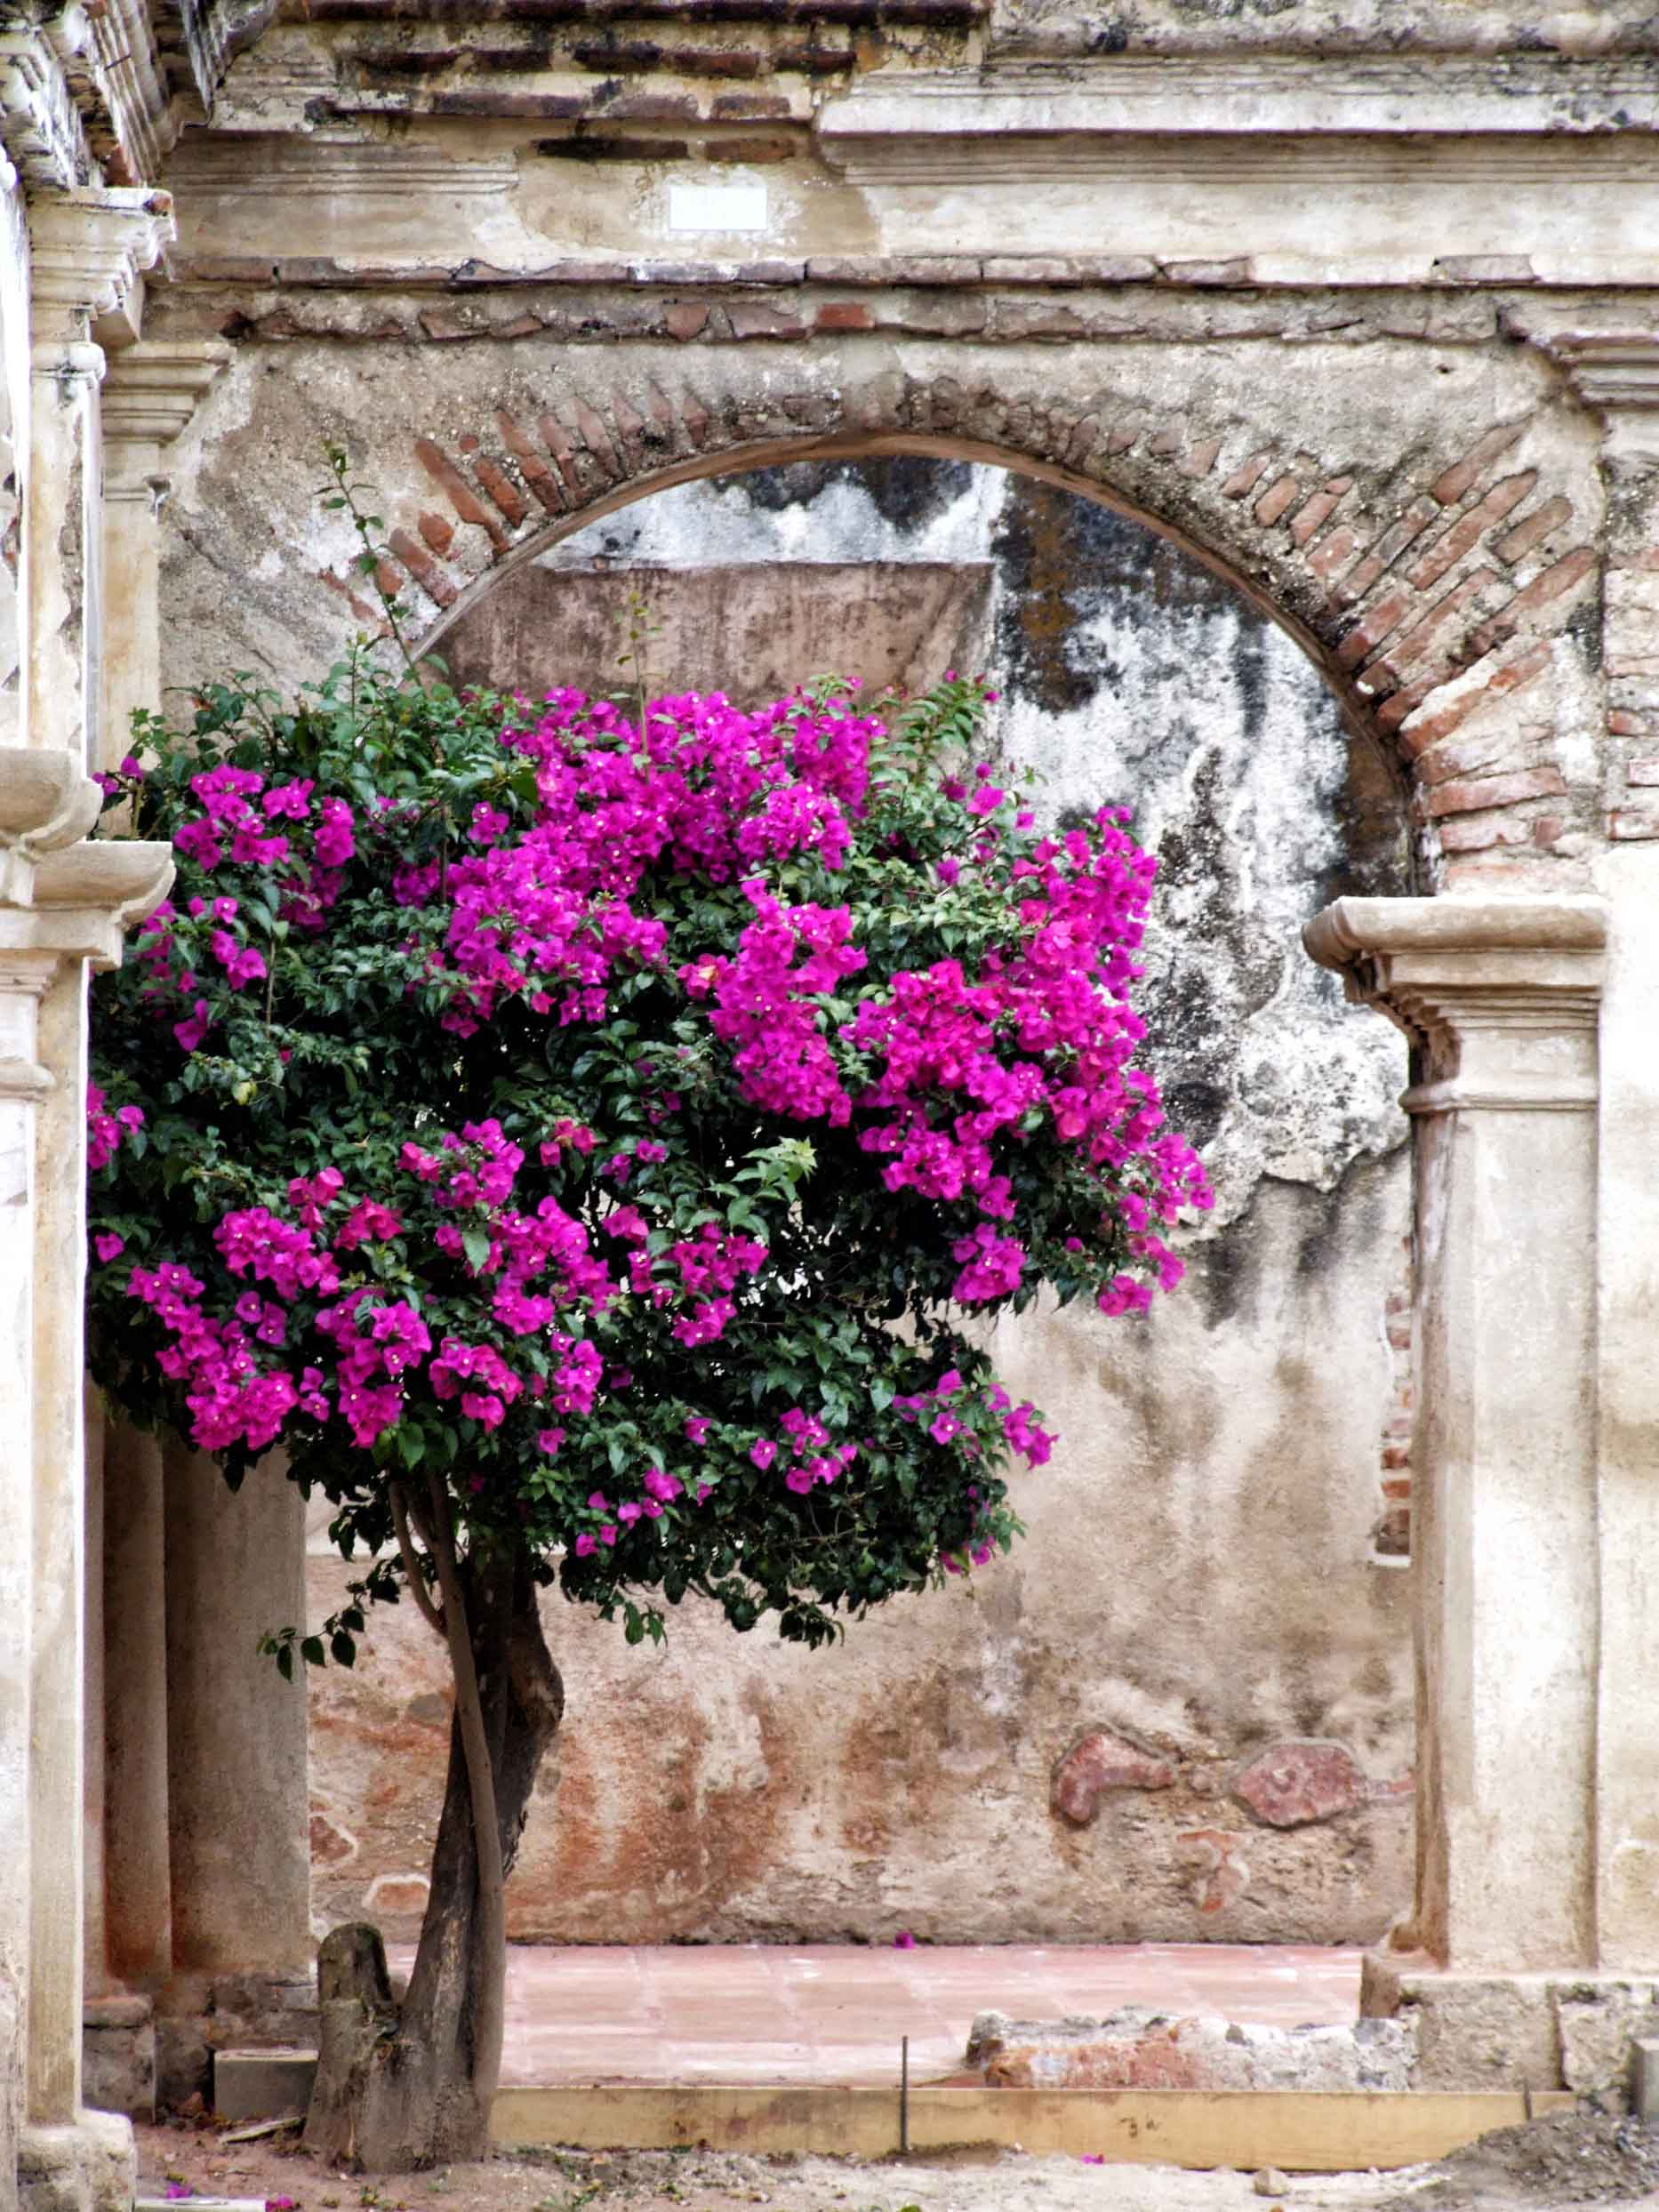 Tree with purple flowers growing under ruined arch